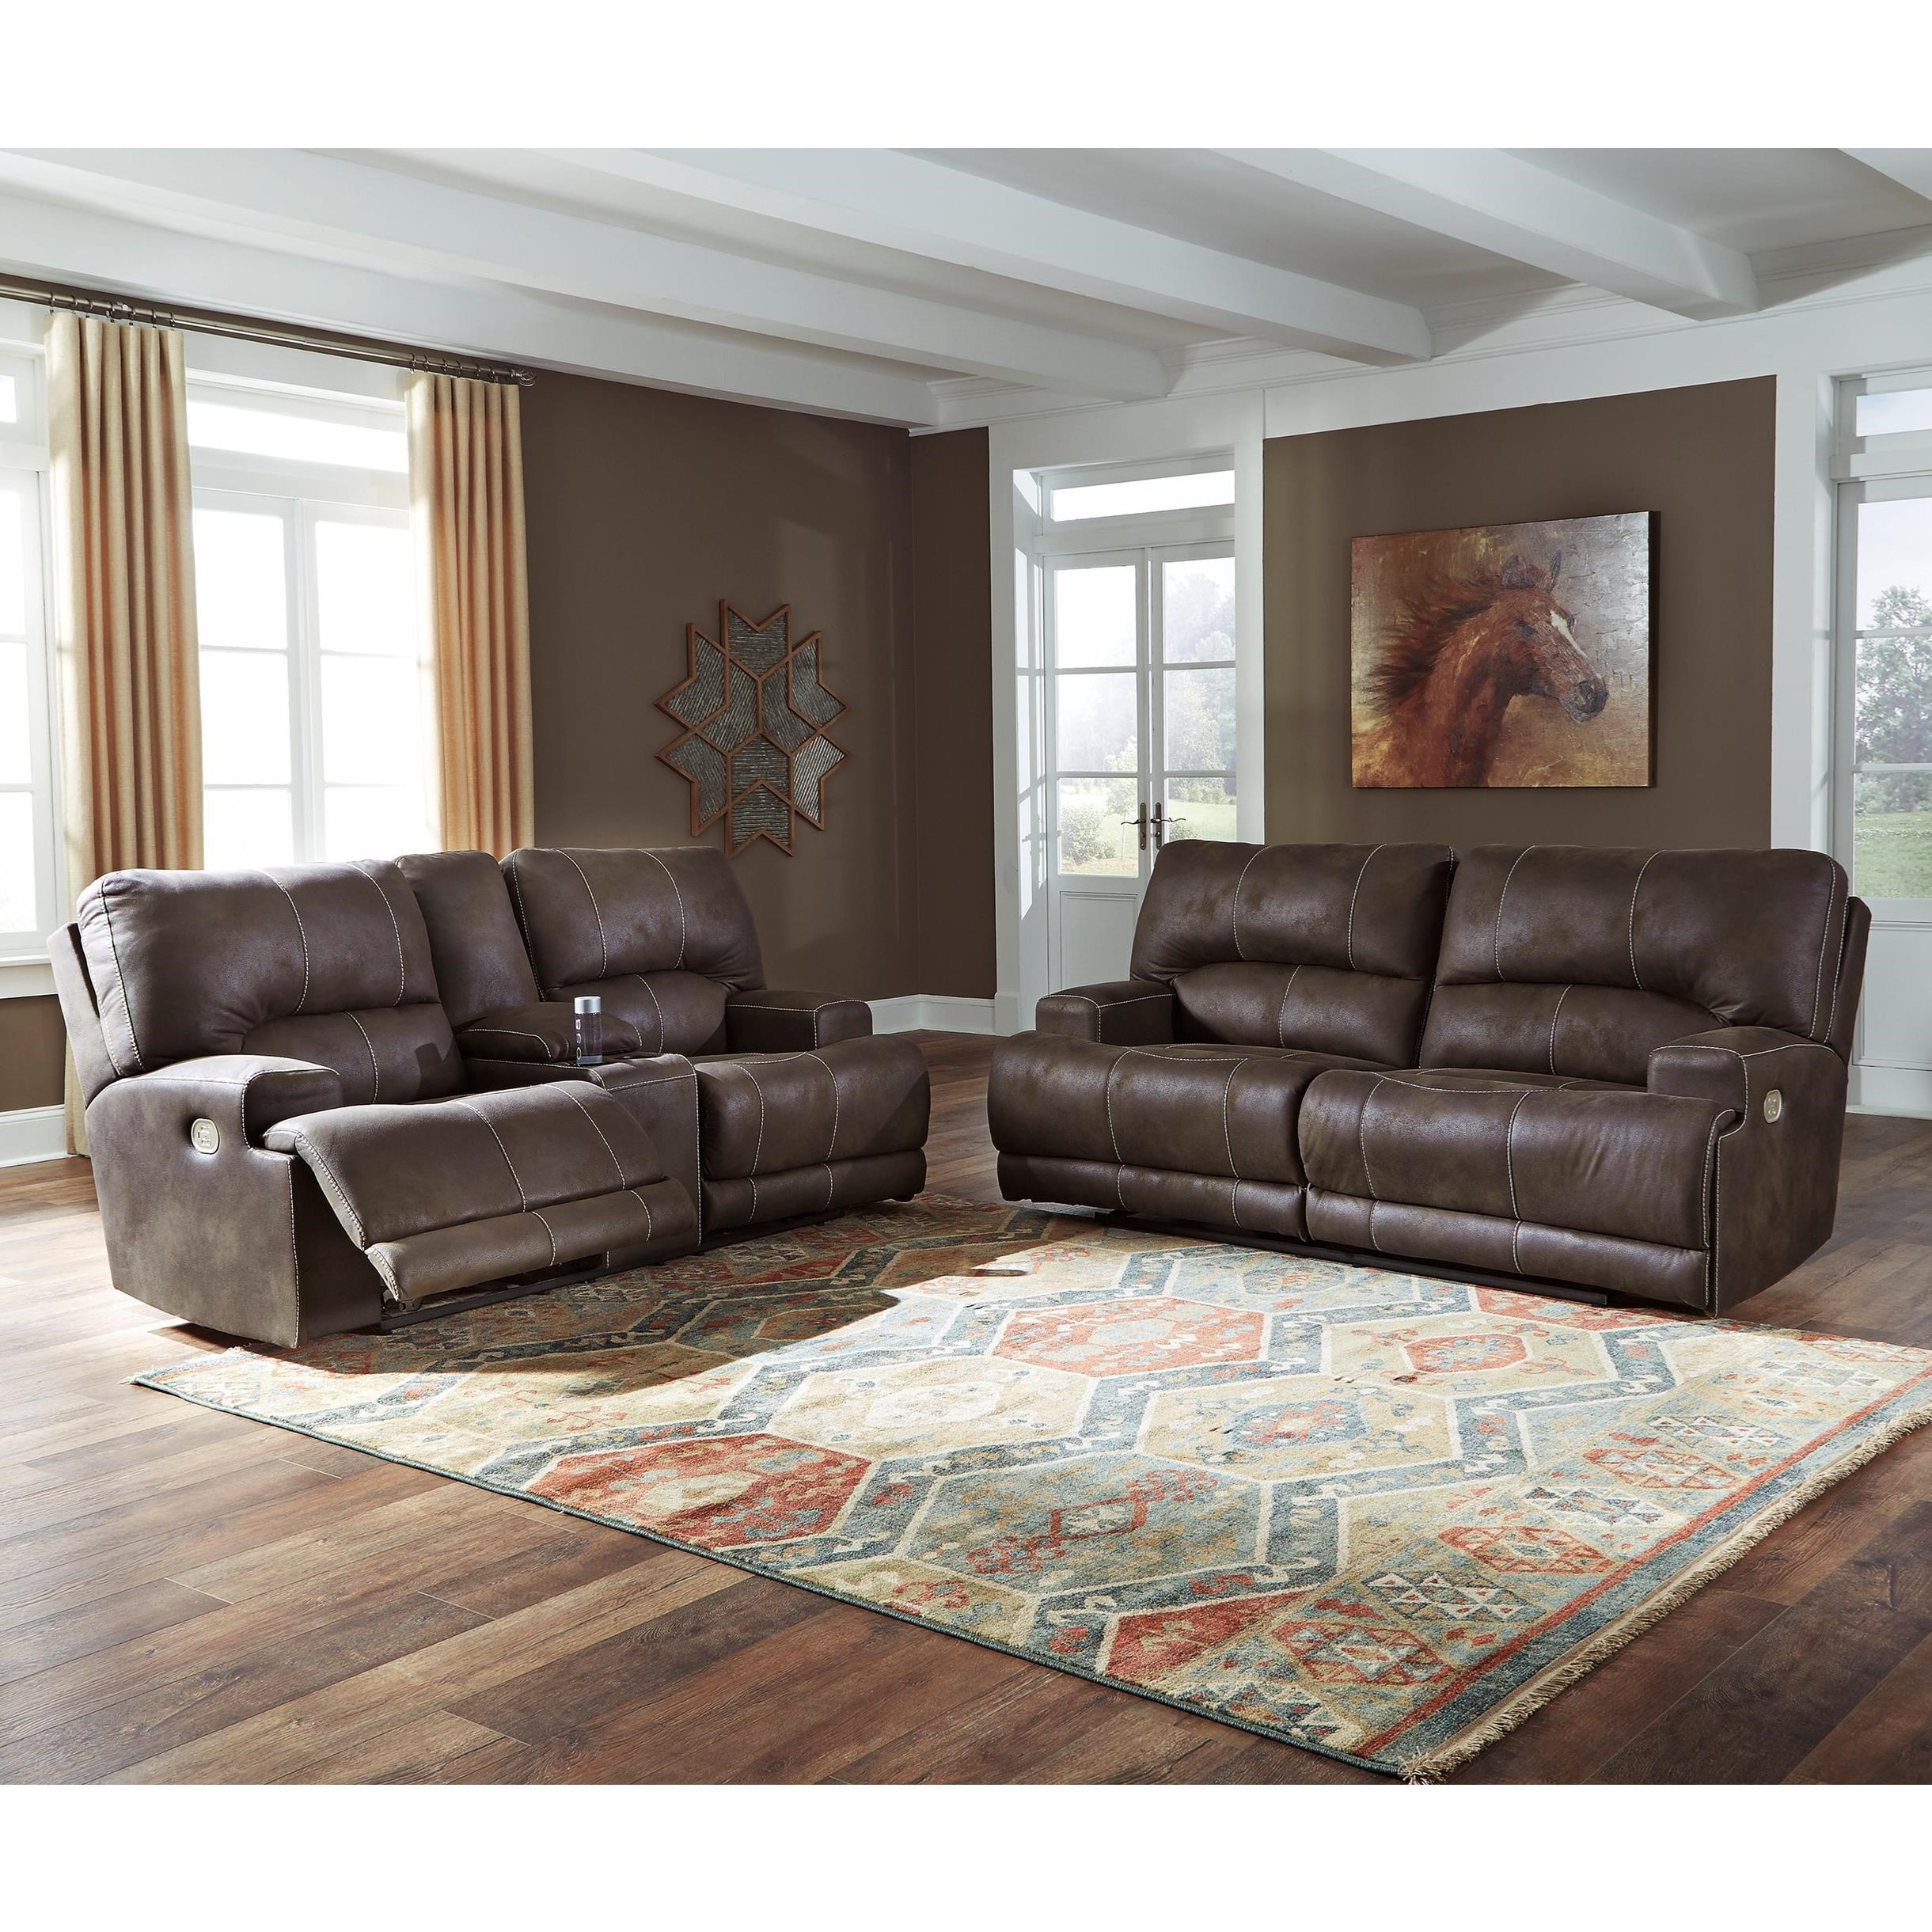 Kitching Power Reclining Living Room Group by Signature Design by Ashley at Northeast Factory Direct